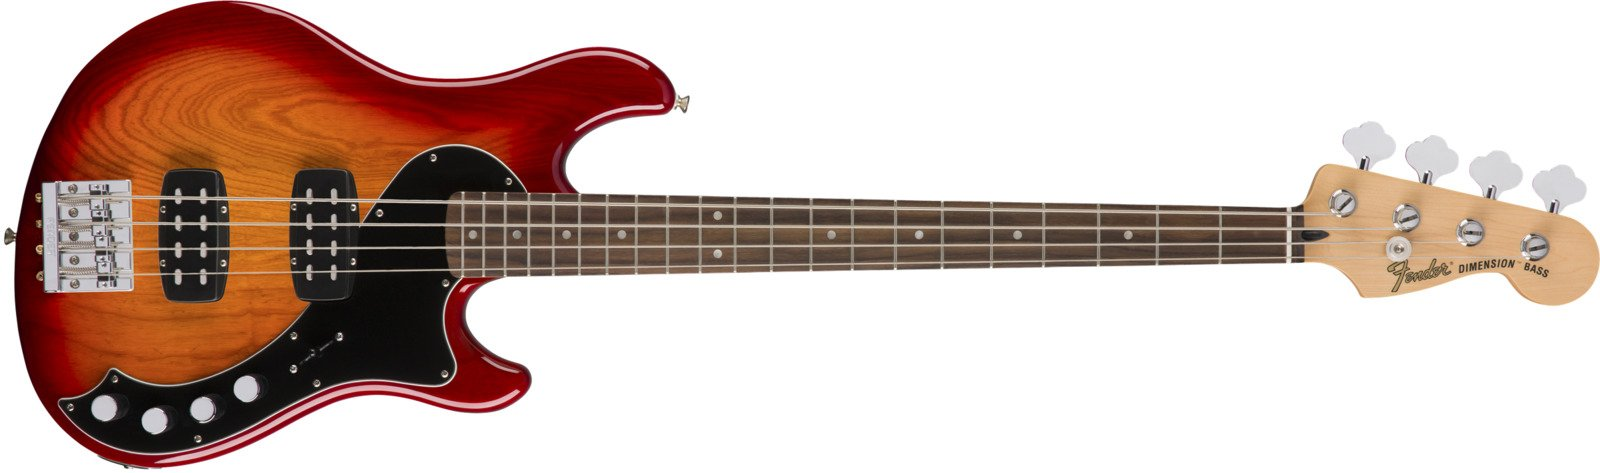 Dimension Bass Deluxe RW ACB